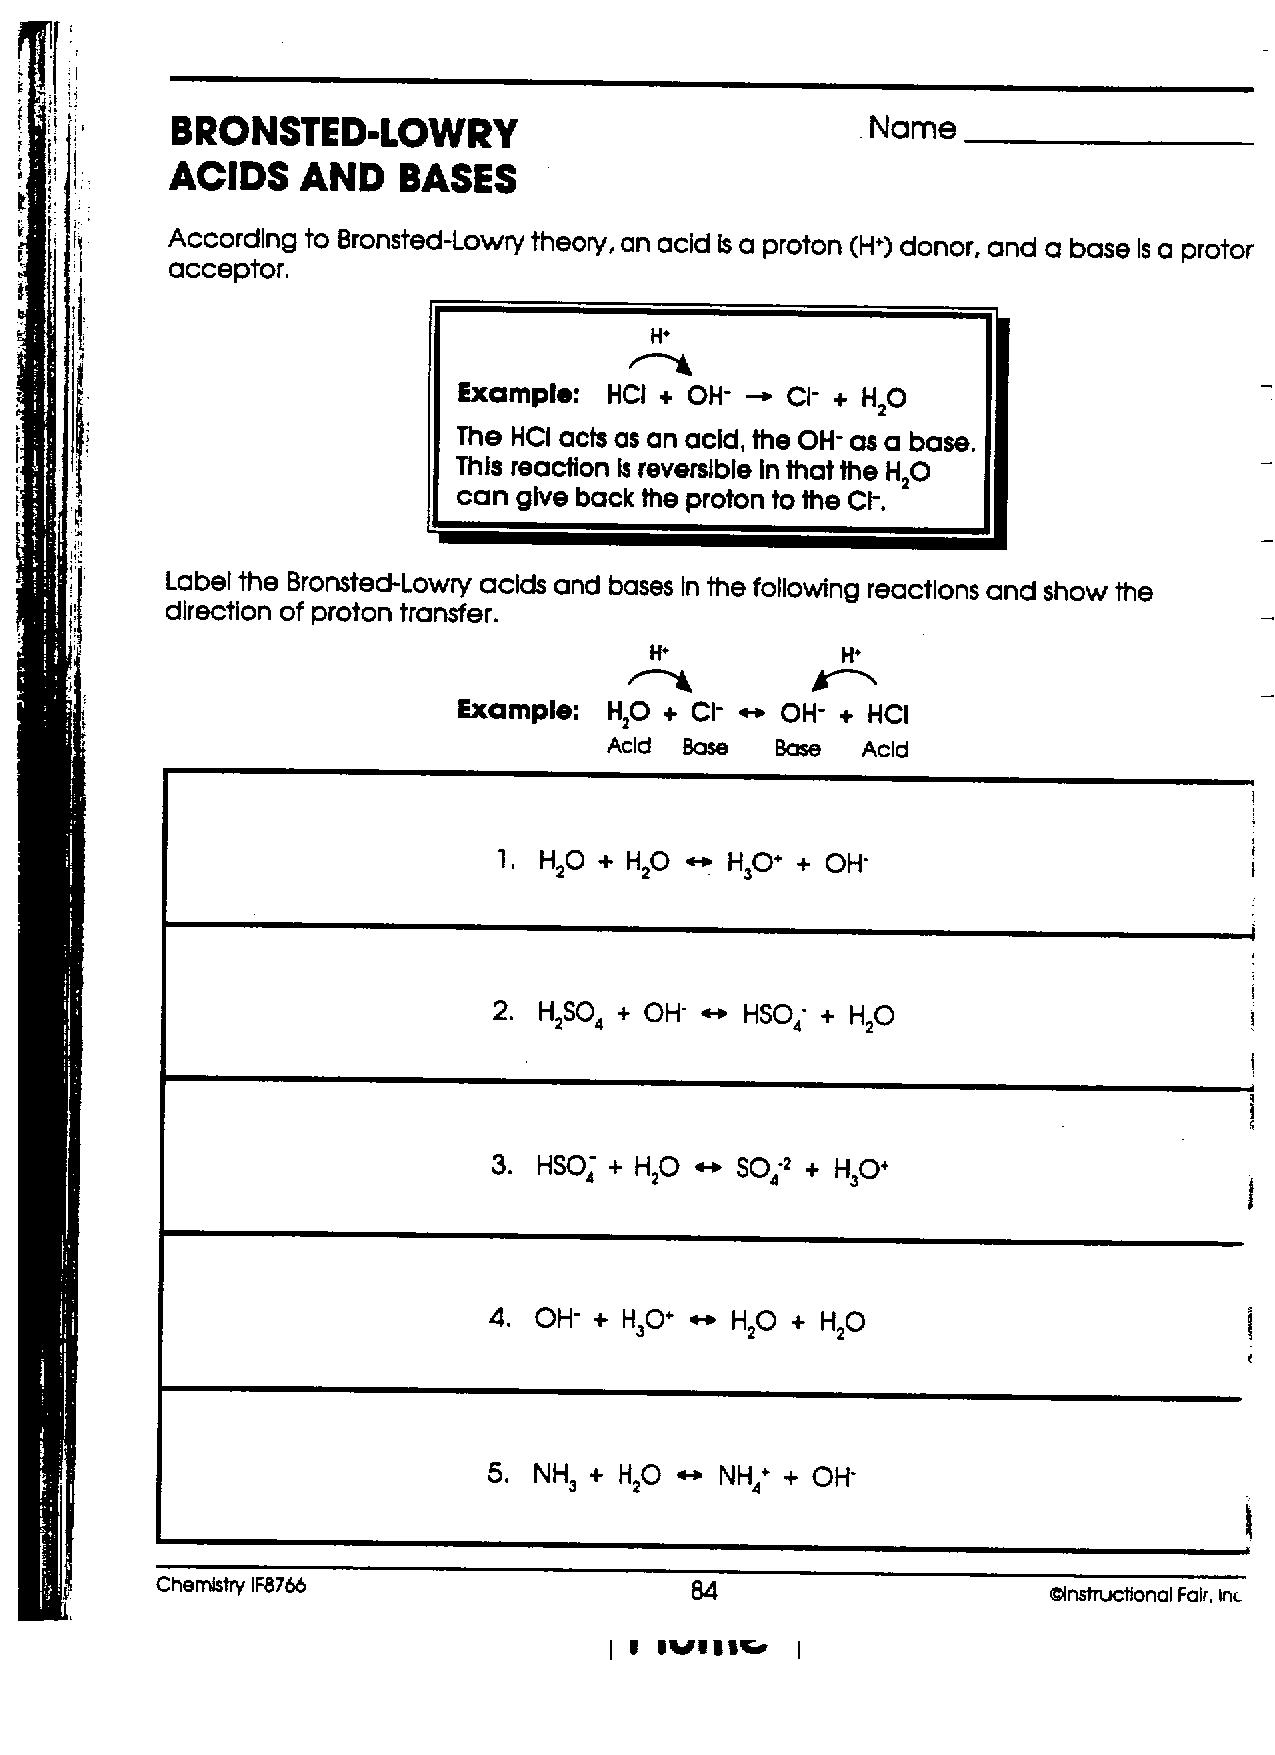 Worksheets Bronsted-lowry Acids And Bases Worksheet chem iib mr phelps big rapids hs download file